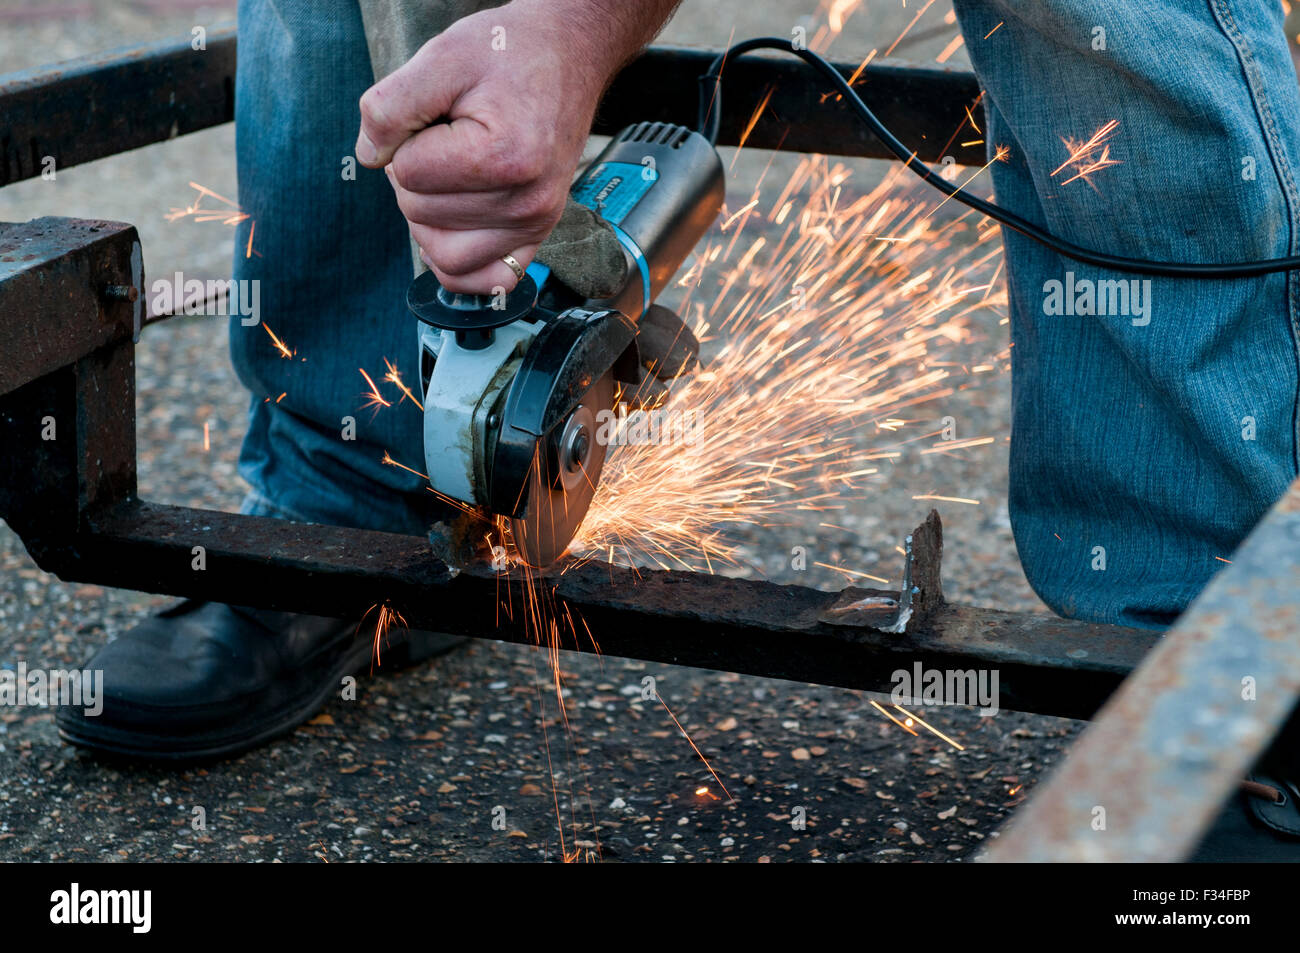 A person angle grinding a boat trailer. - Stock Image